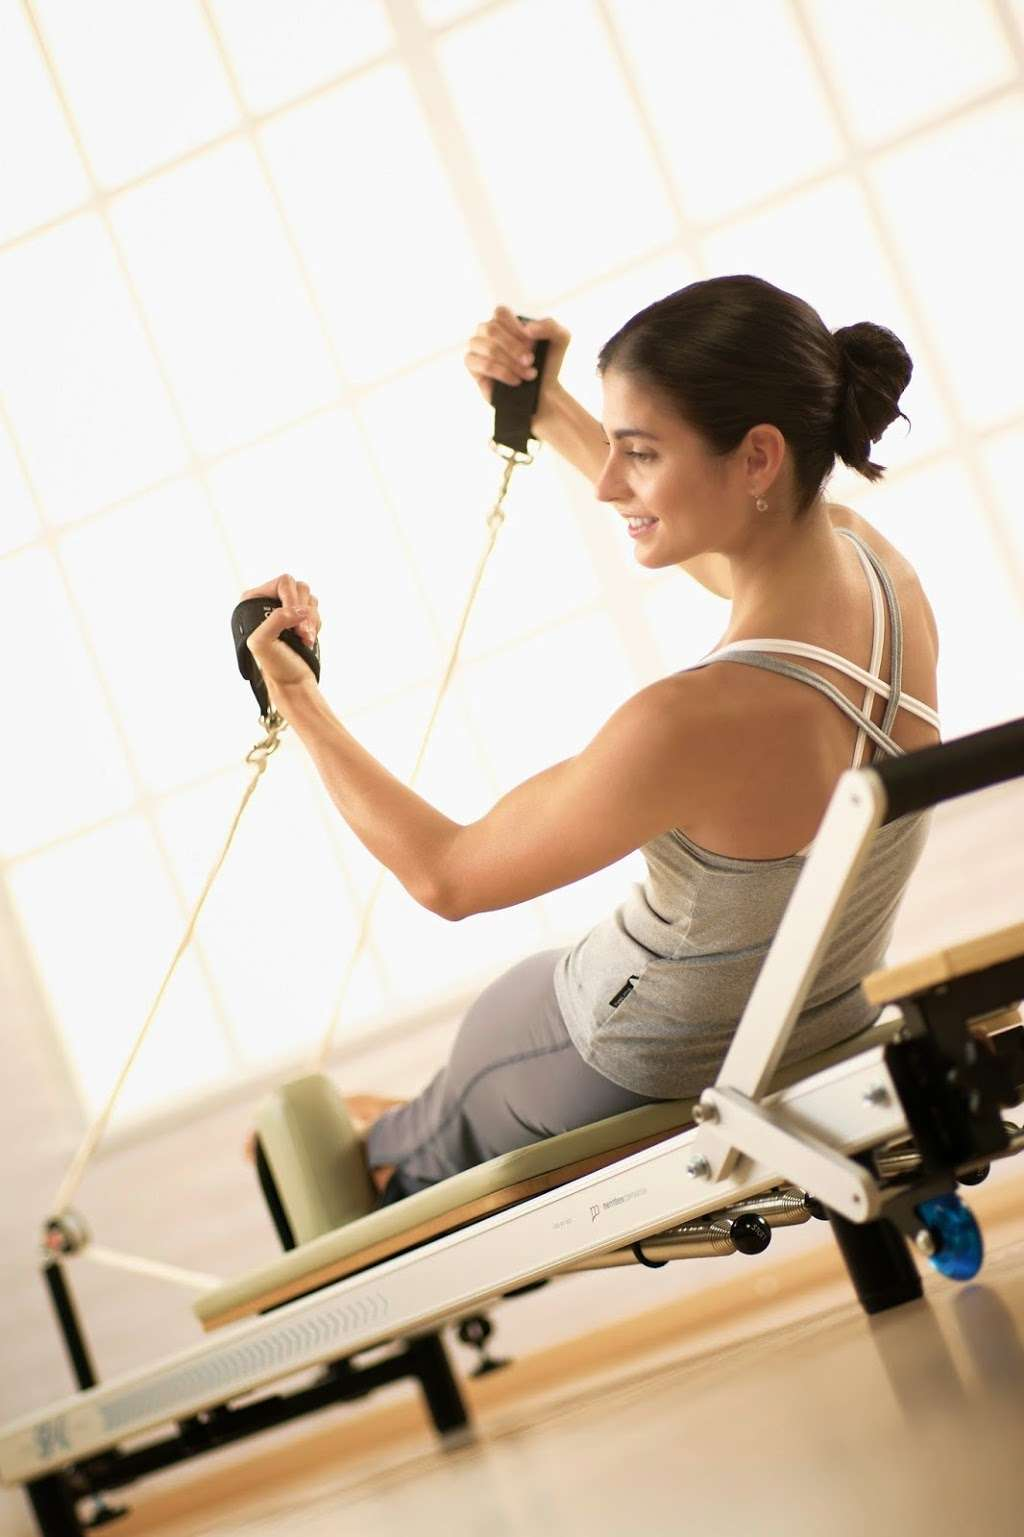 Liberty Pilates - gym  | Photo 3 of 7 | Address: 260 Suydam Ave, Jersey City, NJ 07304, USA | Phone: (201) 432-6398